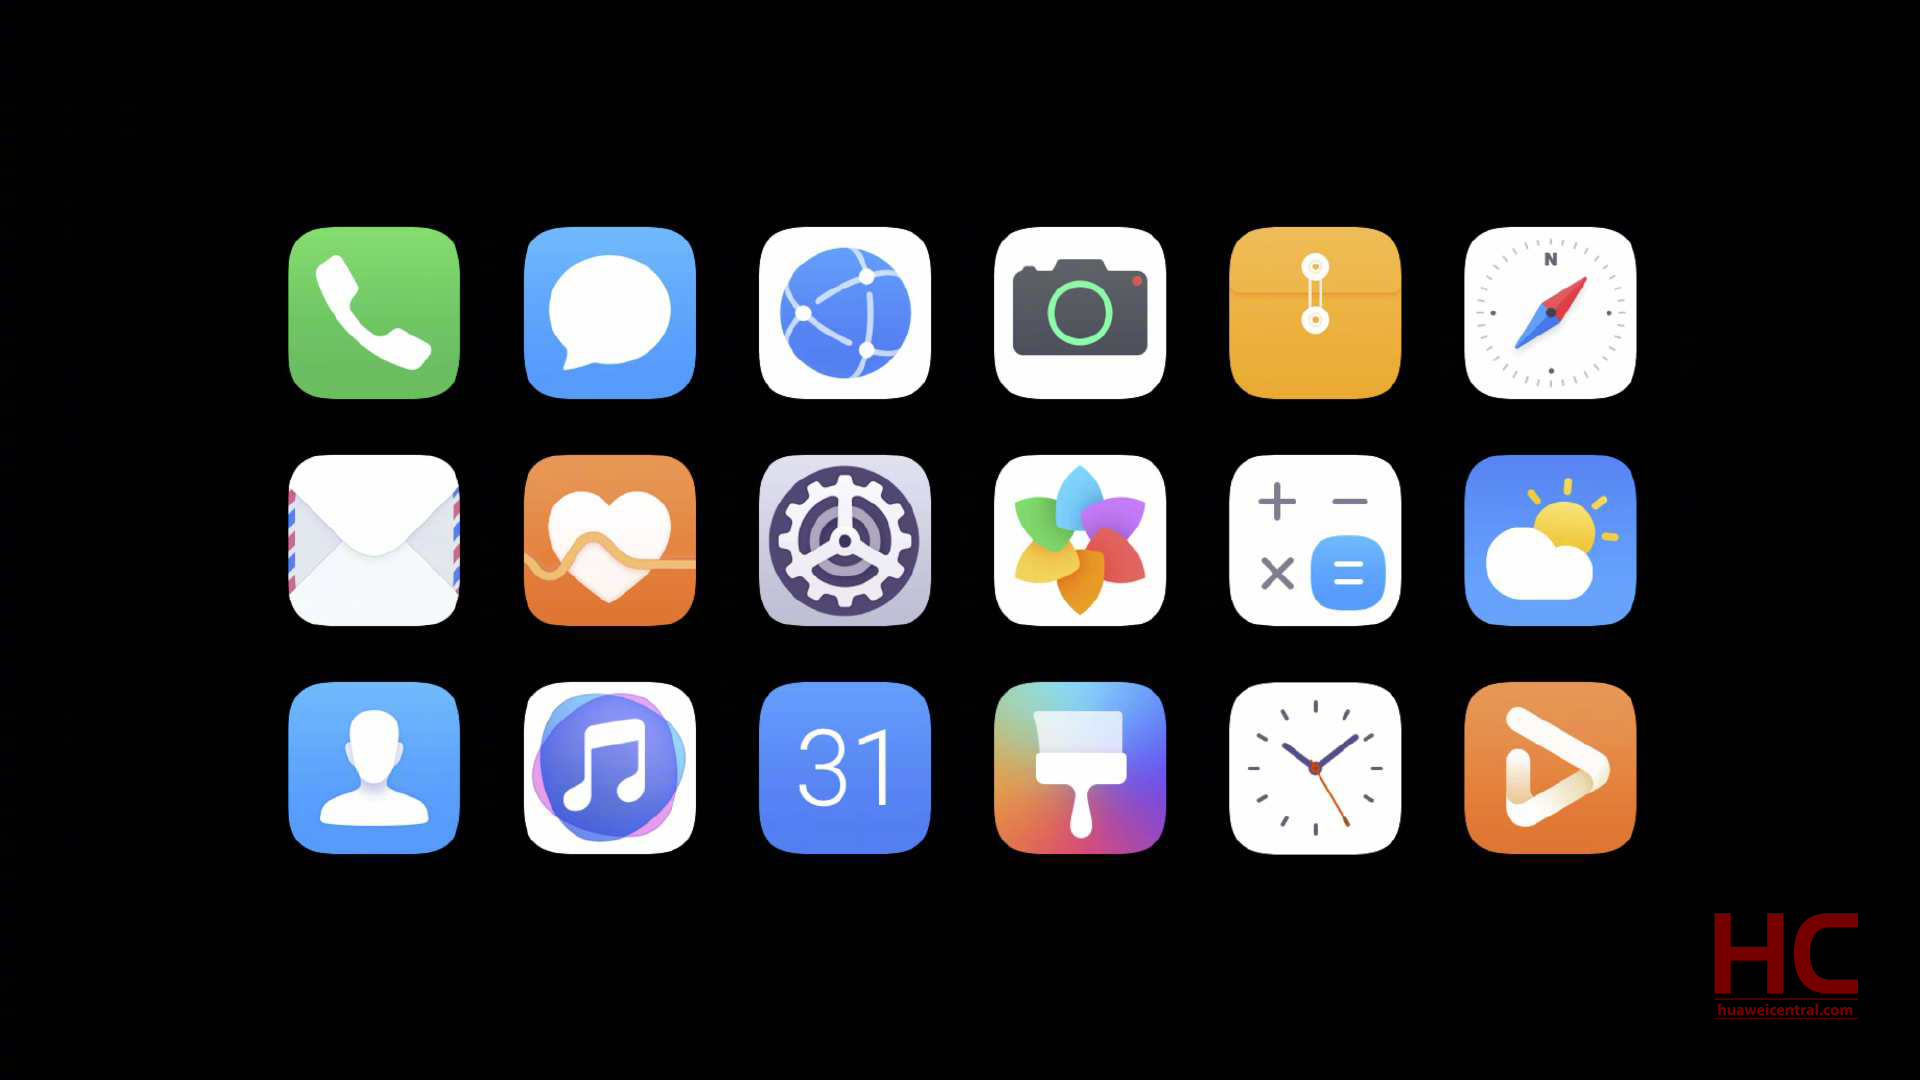 emui-10-changes-in-icons-2